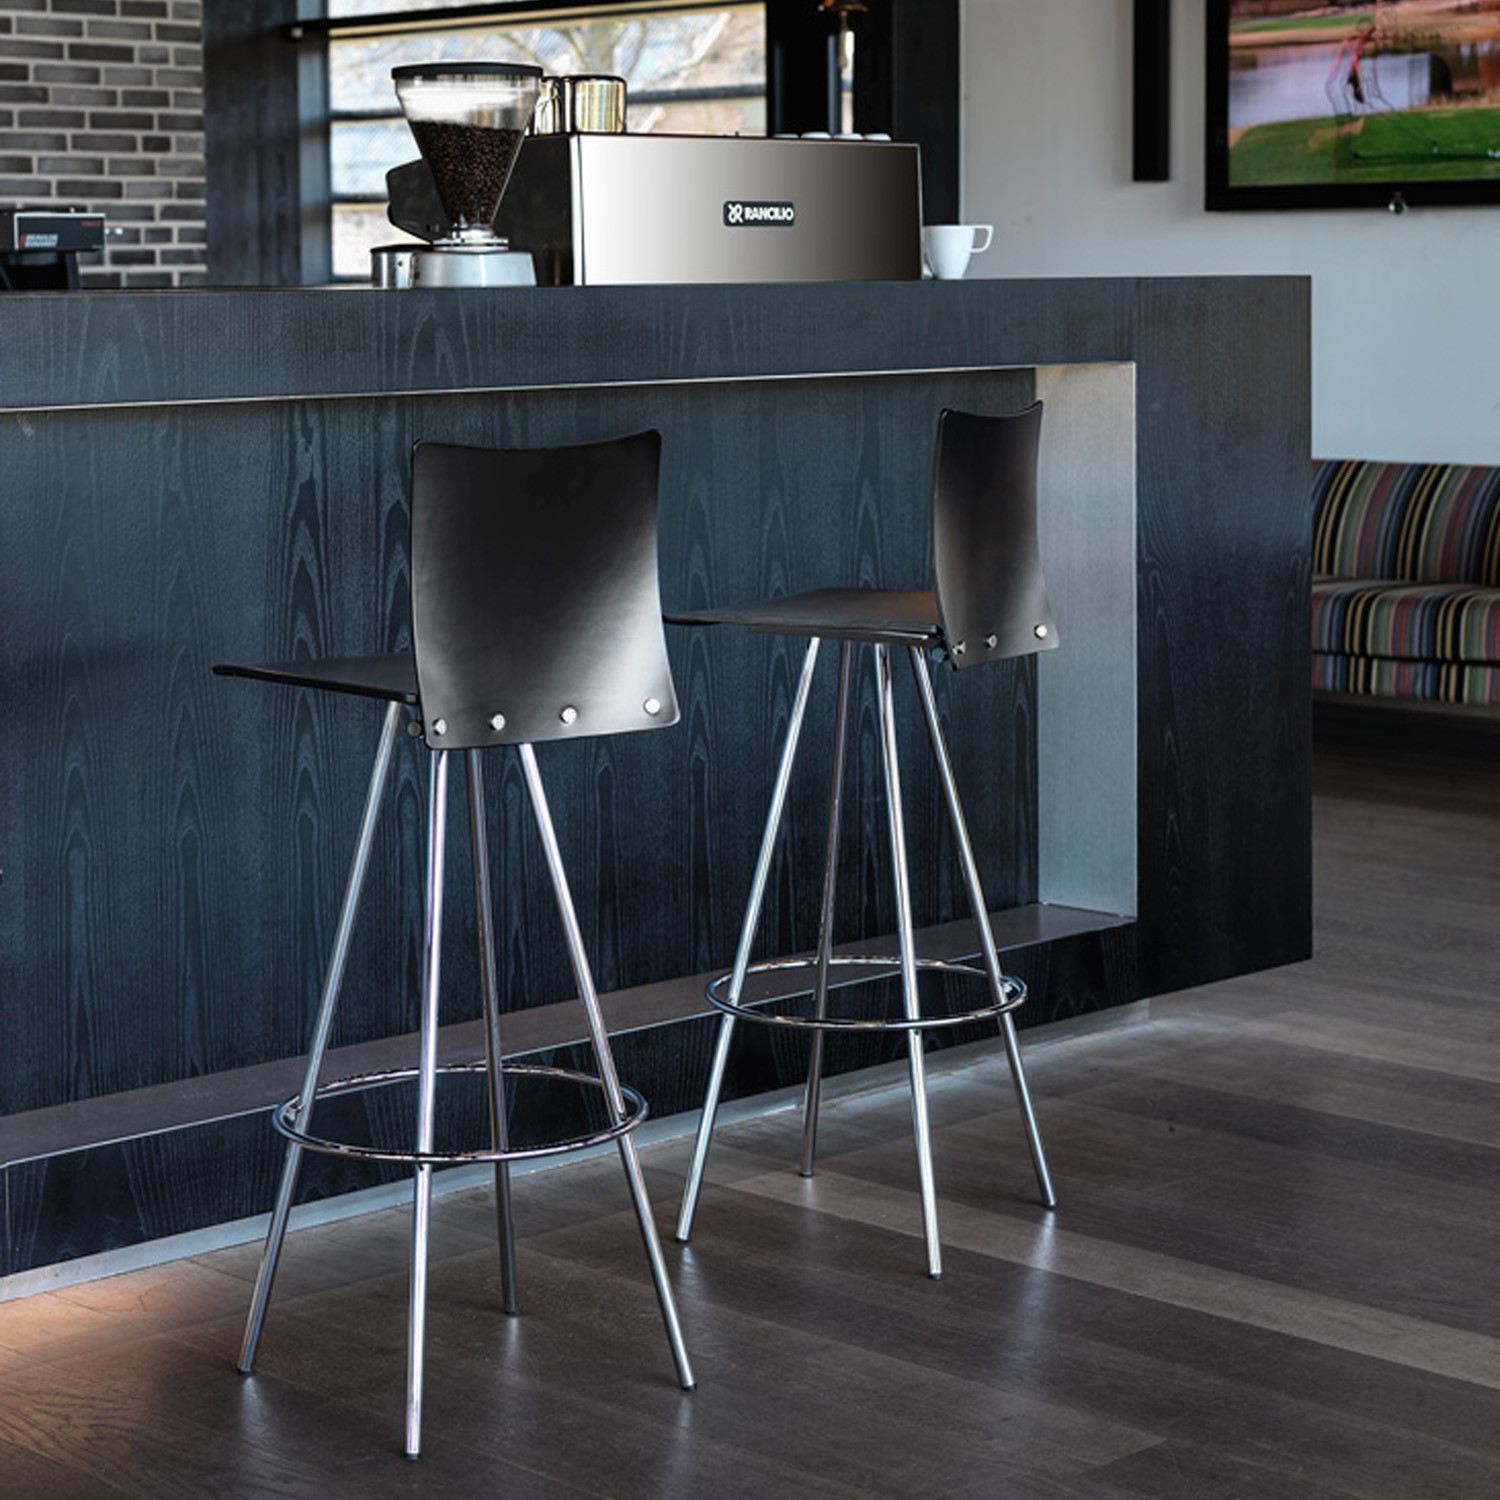 Sala Bar from Randers+Radius